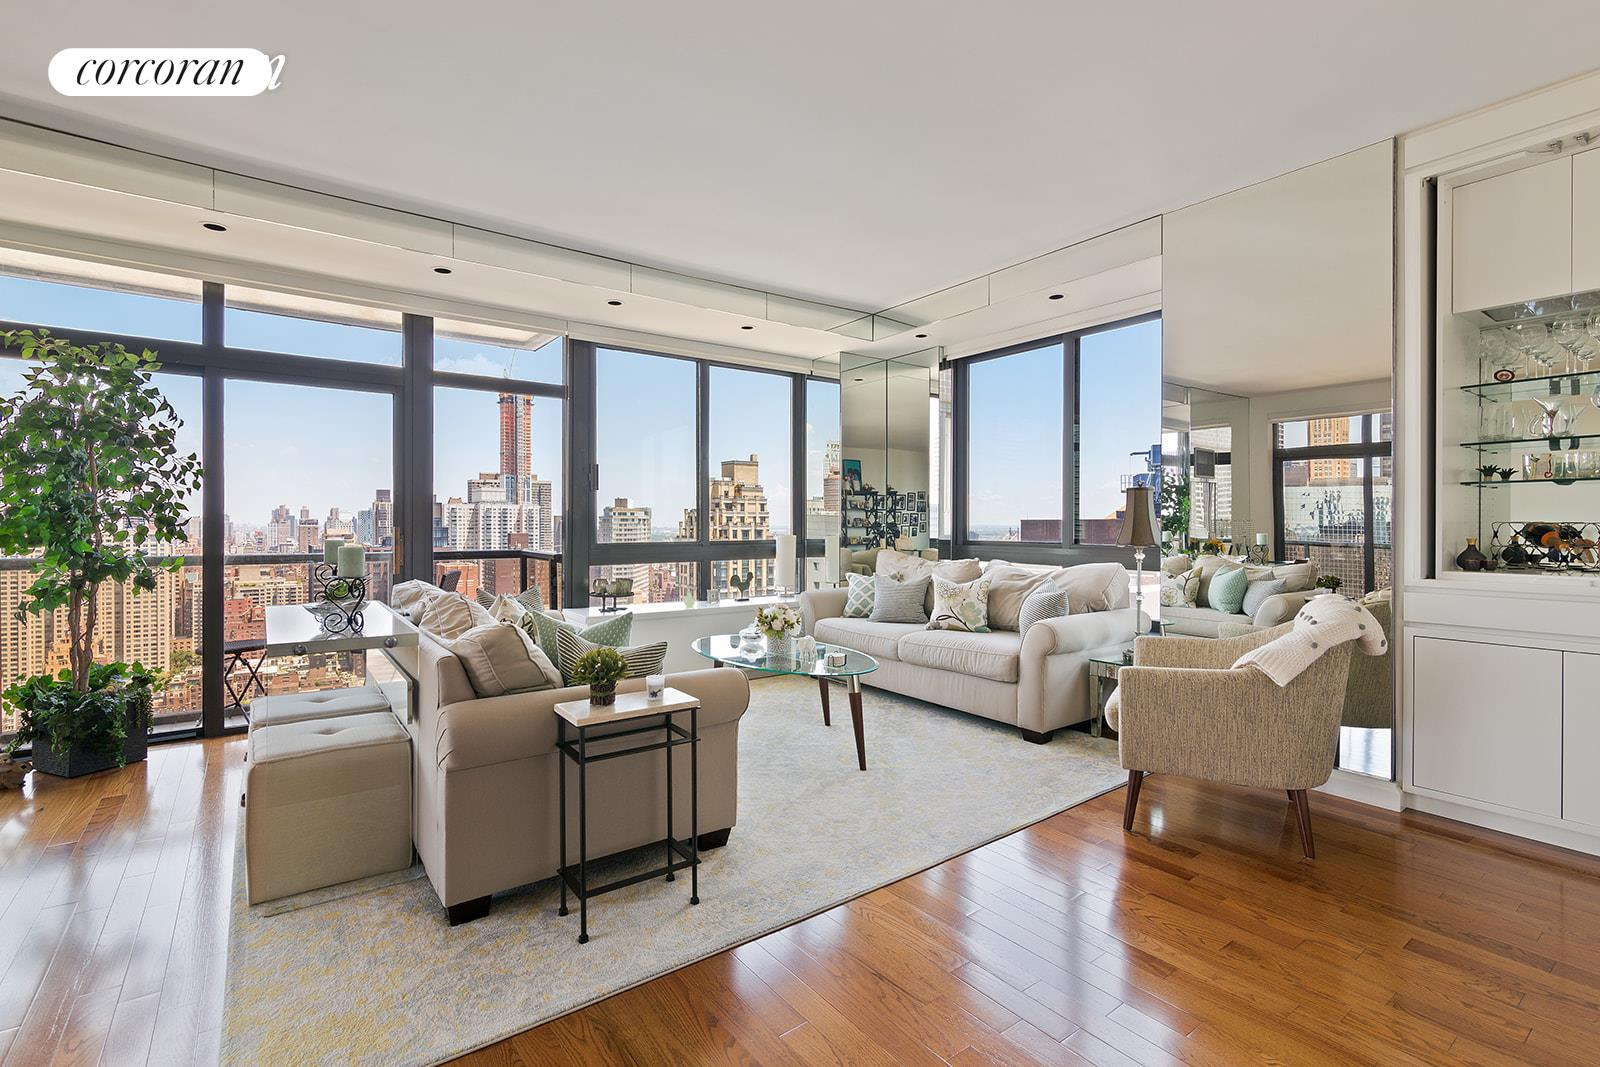 Amazingly Renovated Super Large 1 Bedroom 2 Bath Apartment available for RENT at 100 United Nations Plaza - one of Midtown East's premier white glove condominiums.Elegantly designed and expertly renovated, this amazing apartment is in mint condition with picturesque skyline views.  This line is one of the largest and most sought after 1 bedroom layouts in the city.  A definite WOW apartment!  The apartment is available Furnished or Unfurnished.Upon entering this perfectly appointed 1 bedroom, 2 bathroom unit high on the 37th floor you will be immediately drawn to the impressive open city, river and bridge views framed by three walls of floor-to-ceiling windows. Generous in space with a modern yet classic sensibility, the large open living and dining room boasts North, West and East exposures, a private wrap-around balcony, custom built-ins, a dry bar and recessed custom lighting. An ideal setting whether spending a quiet evening in or entertaining family and friends.The galley kitchen has been beautifully renovated throughout and features modern, crisp white cabinetry with contrasting countertops, large format stone flooring, a suite of stainless steel appliances by Samsung and custom built-ins for maximum storage.Down the hallway is a super spacious and peaceful bedroom suite. This king-sized bedroom is bathed in natural light from oversized windows with panoramic city views to the north, while five substantial closets plus a generous walk-in closet provide maximum storage space. The windowed en suite marble bathroom has a glass-enclosed shower, separate Jacuzzi bathtub and updated vanity.This immaculate apartment also features high ceilings, hardwood flooring, a second full, windowed guest bathroom, central heat and A/C, and a custom entry foyer with an interior glass-paneled door.Available for a 12/21/20 lease start date. Condominium Package Required.Located on East 48th Street and First Avenue, 100 United Nations Plaza is a white-glove, full service condominium 